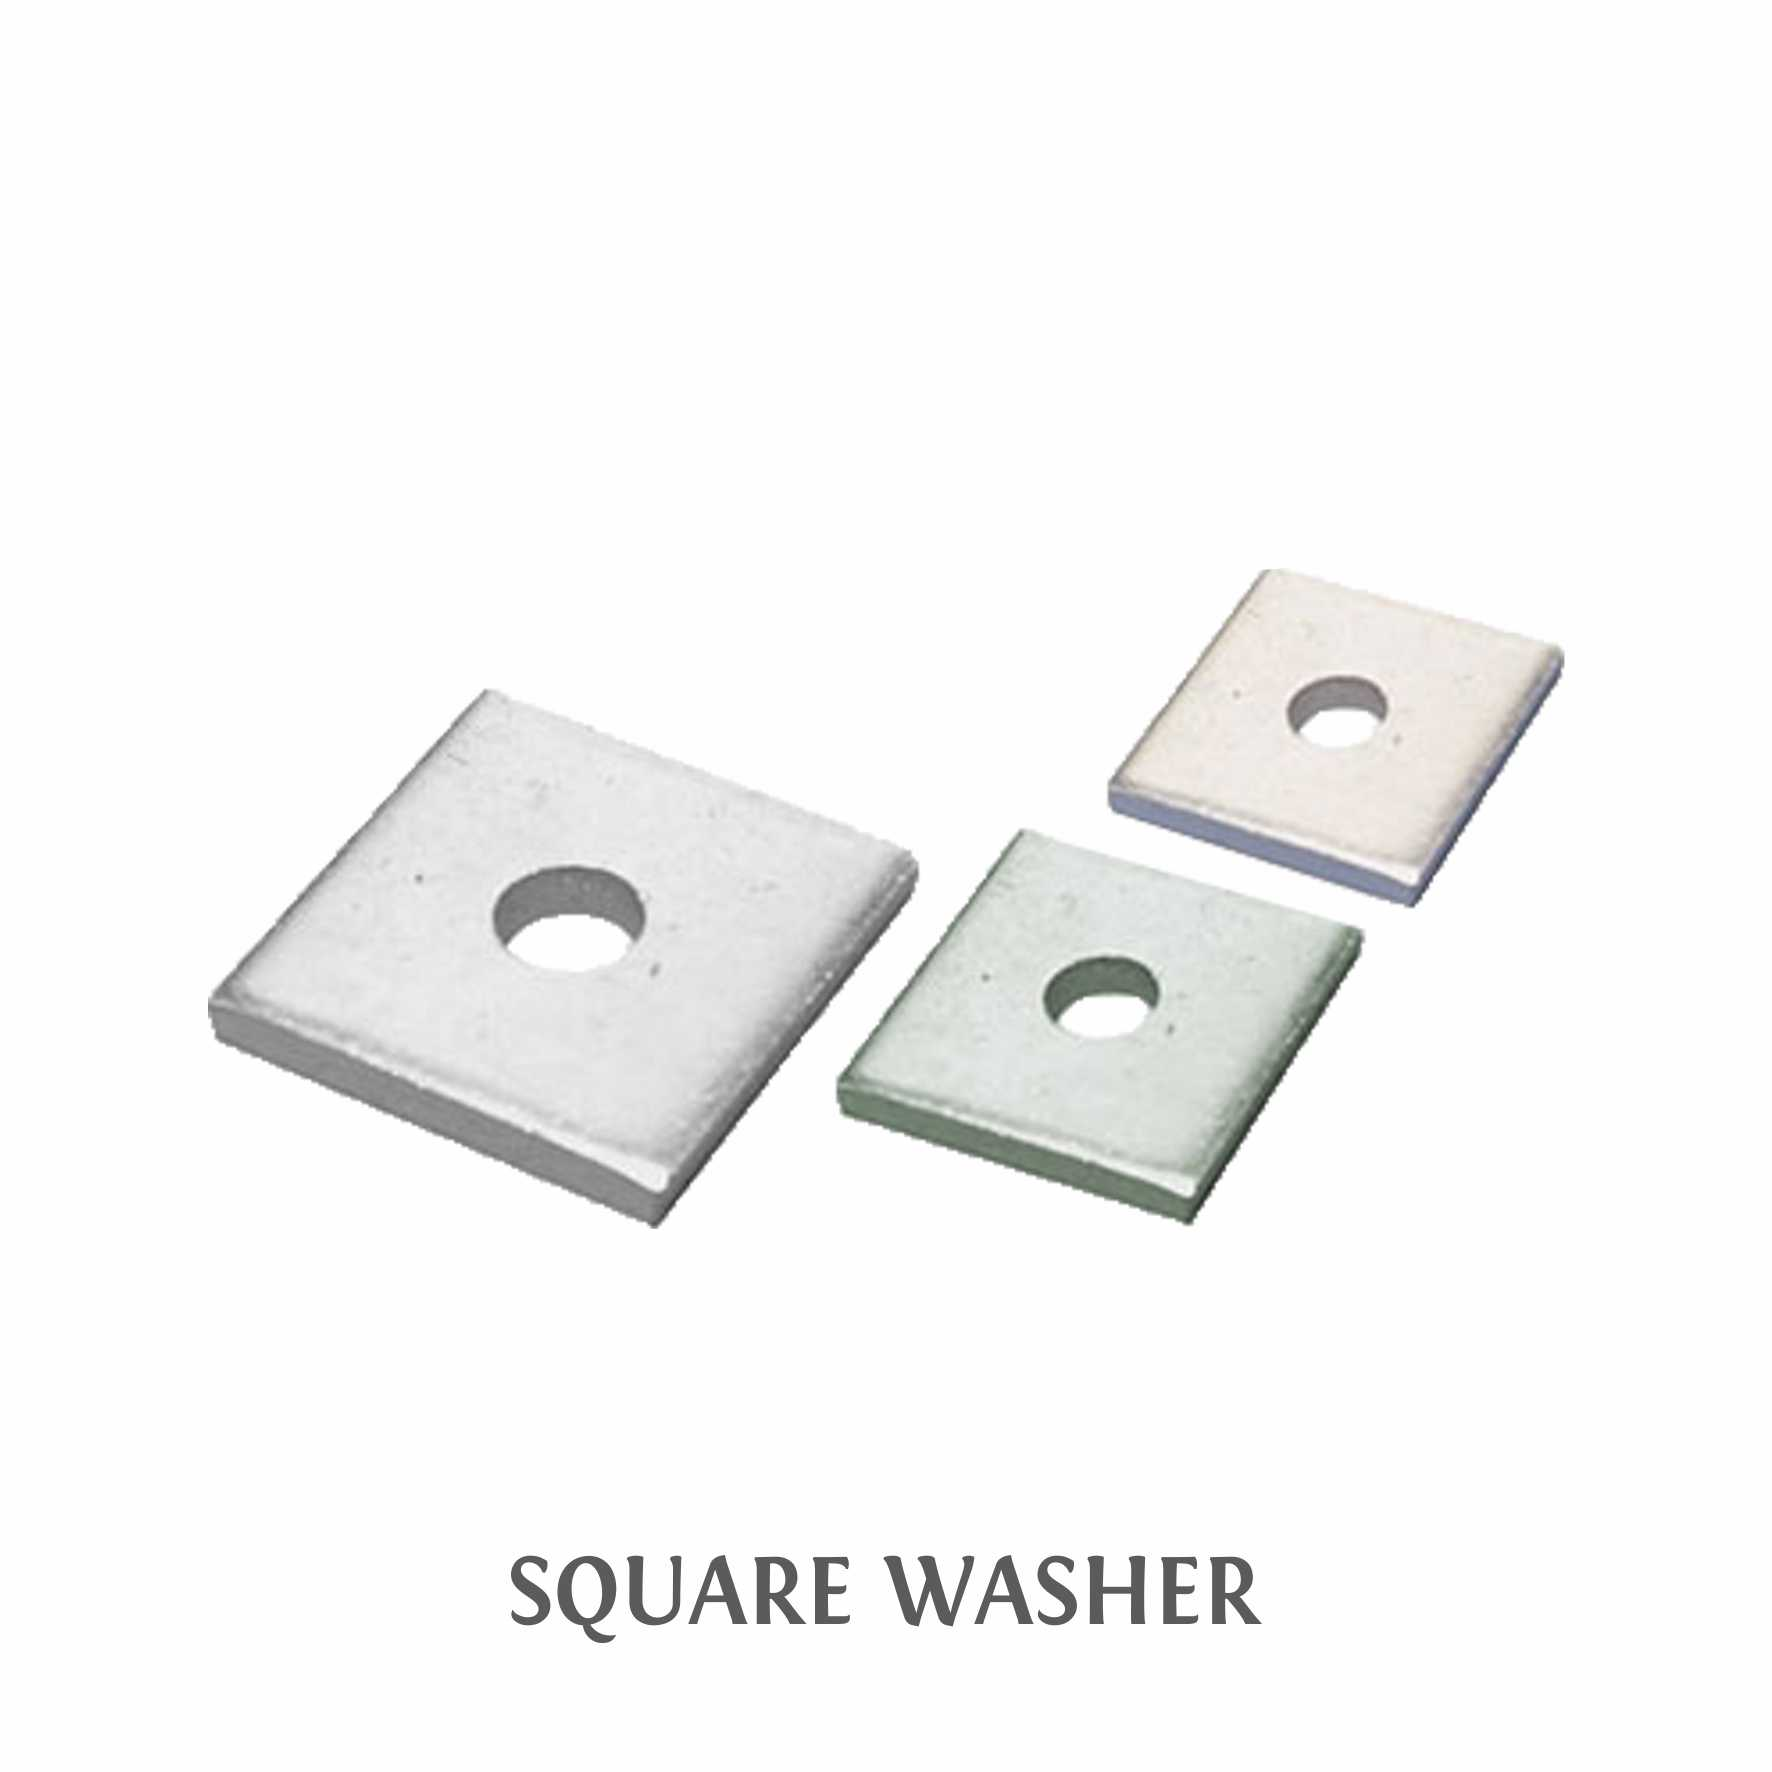 4-SQUARE WASHER